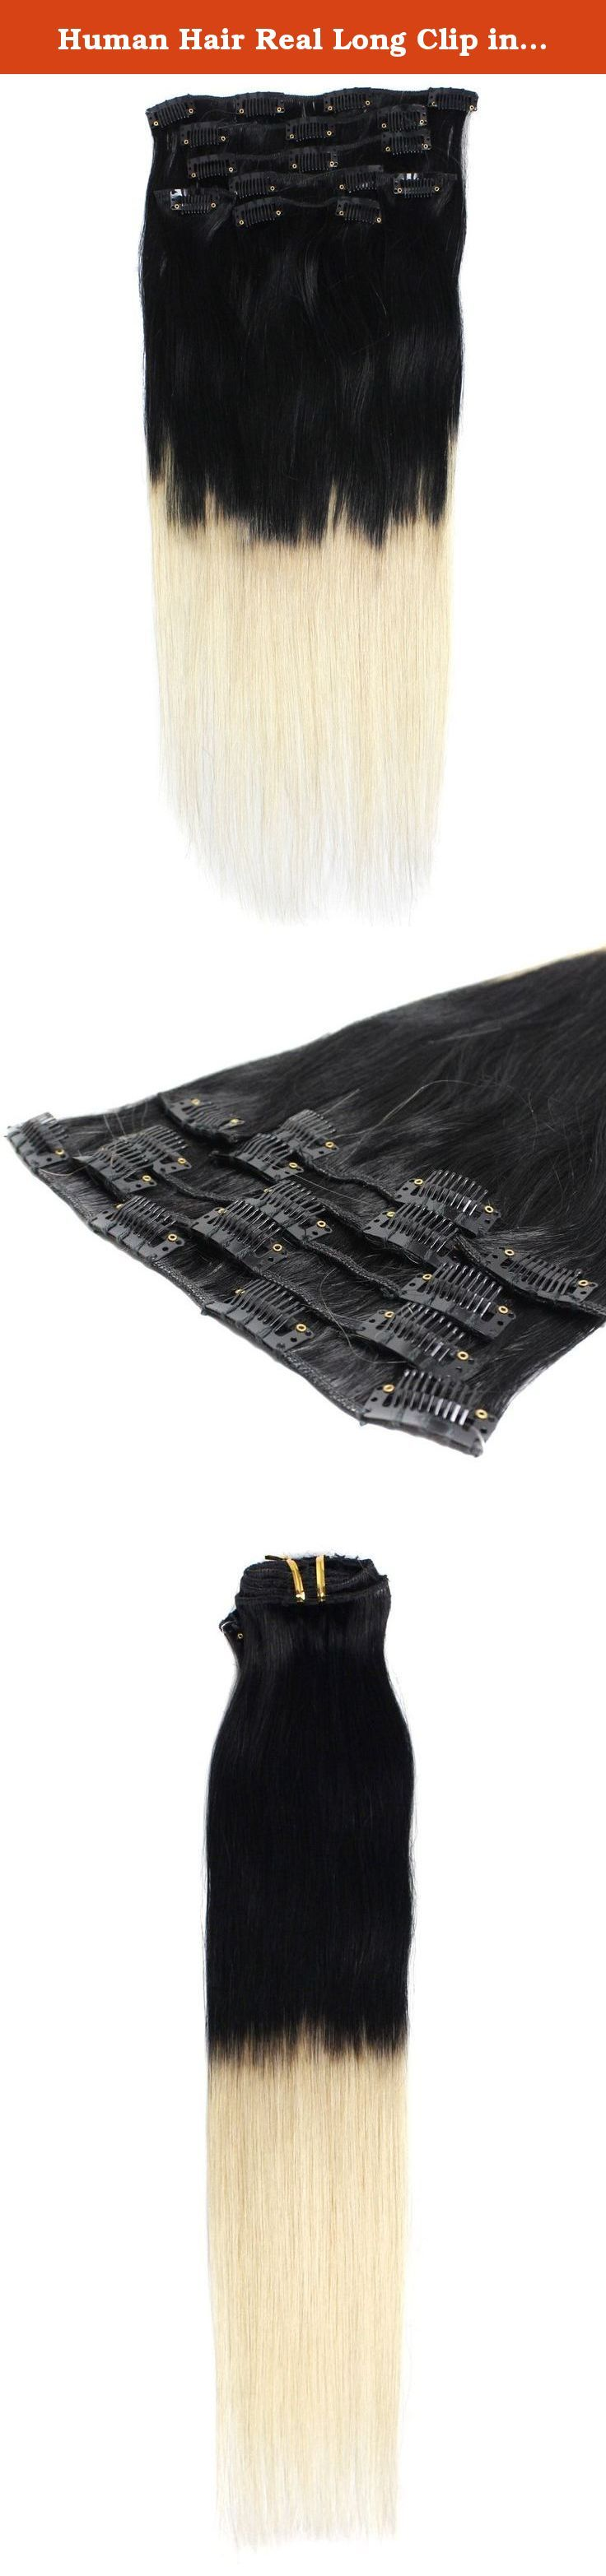 Human Hair Real Long Clip in Remy Human Hair Extensions 18 Inch Color 1/613 70g for Women Beauty. Human Hair Extensions long Asian soft Silky straight 100% human hair extension. The best quality and price for absolutely gorgeous tape in human hair extensions ! You will be amazed on the quality. Wearing it, it can bring you more confidence, more charm and more happiness. We guarantee 100% human hair. A set of 7 pieces : one - 8 inch piece with four clips ( for the back of the head ) two…